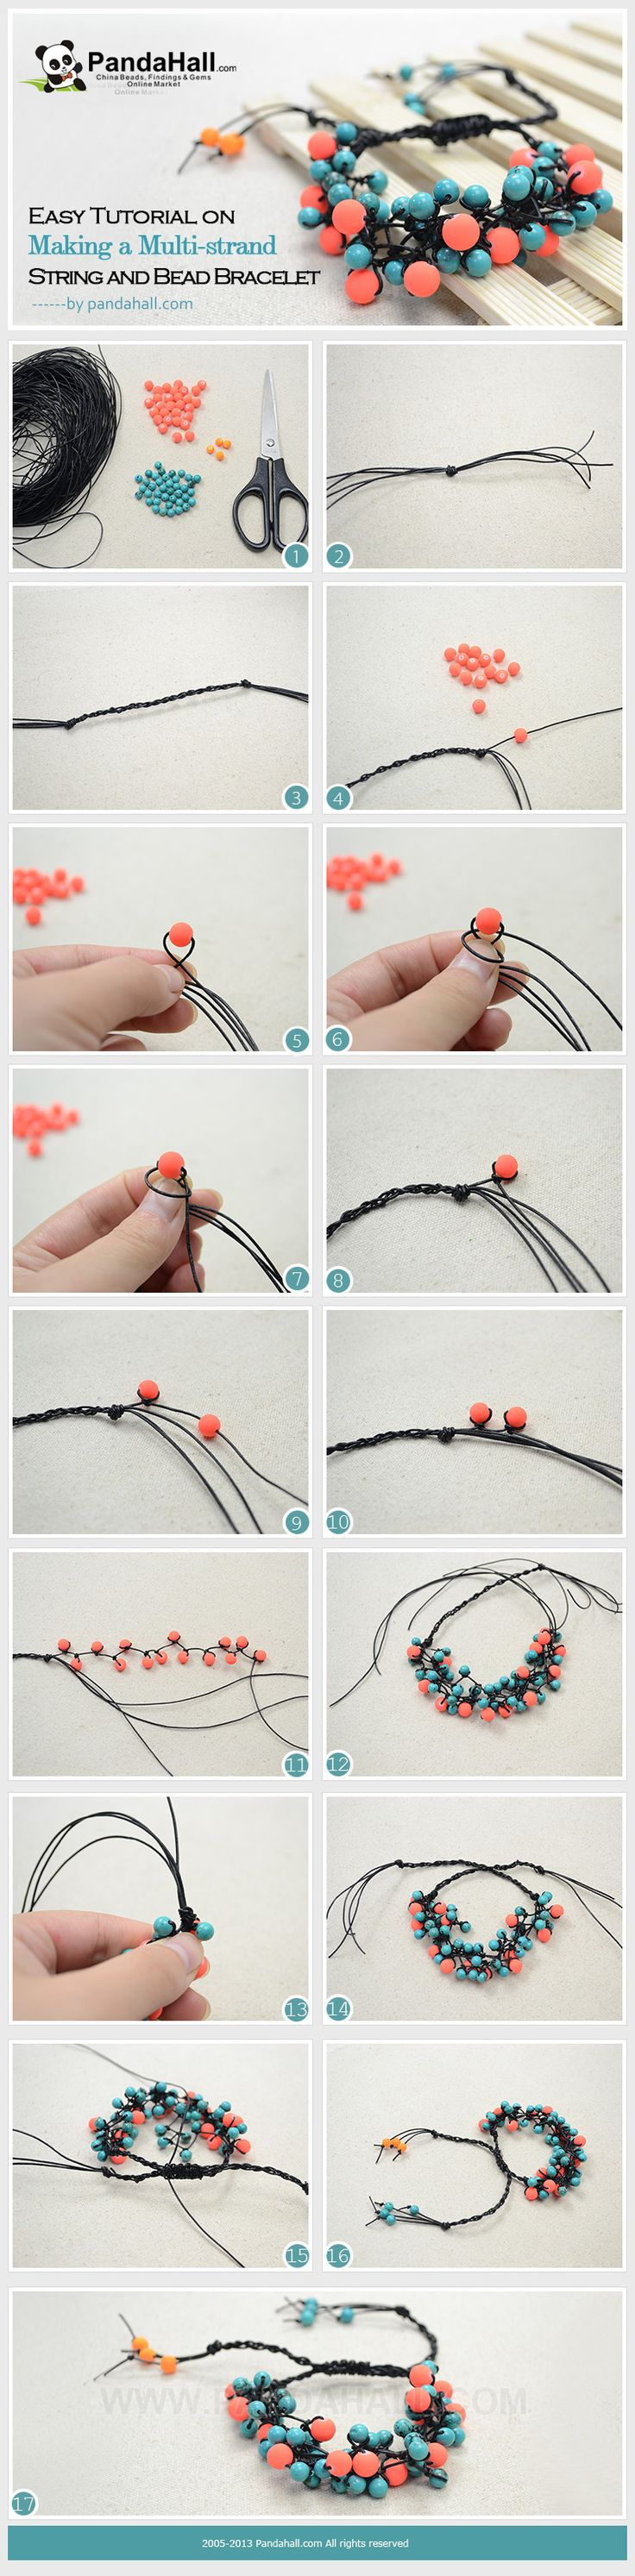 Easy Tutorial on Making a Multi-strand String and Bead Bracelet